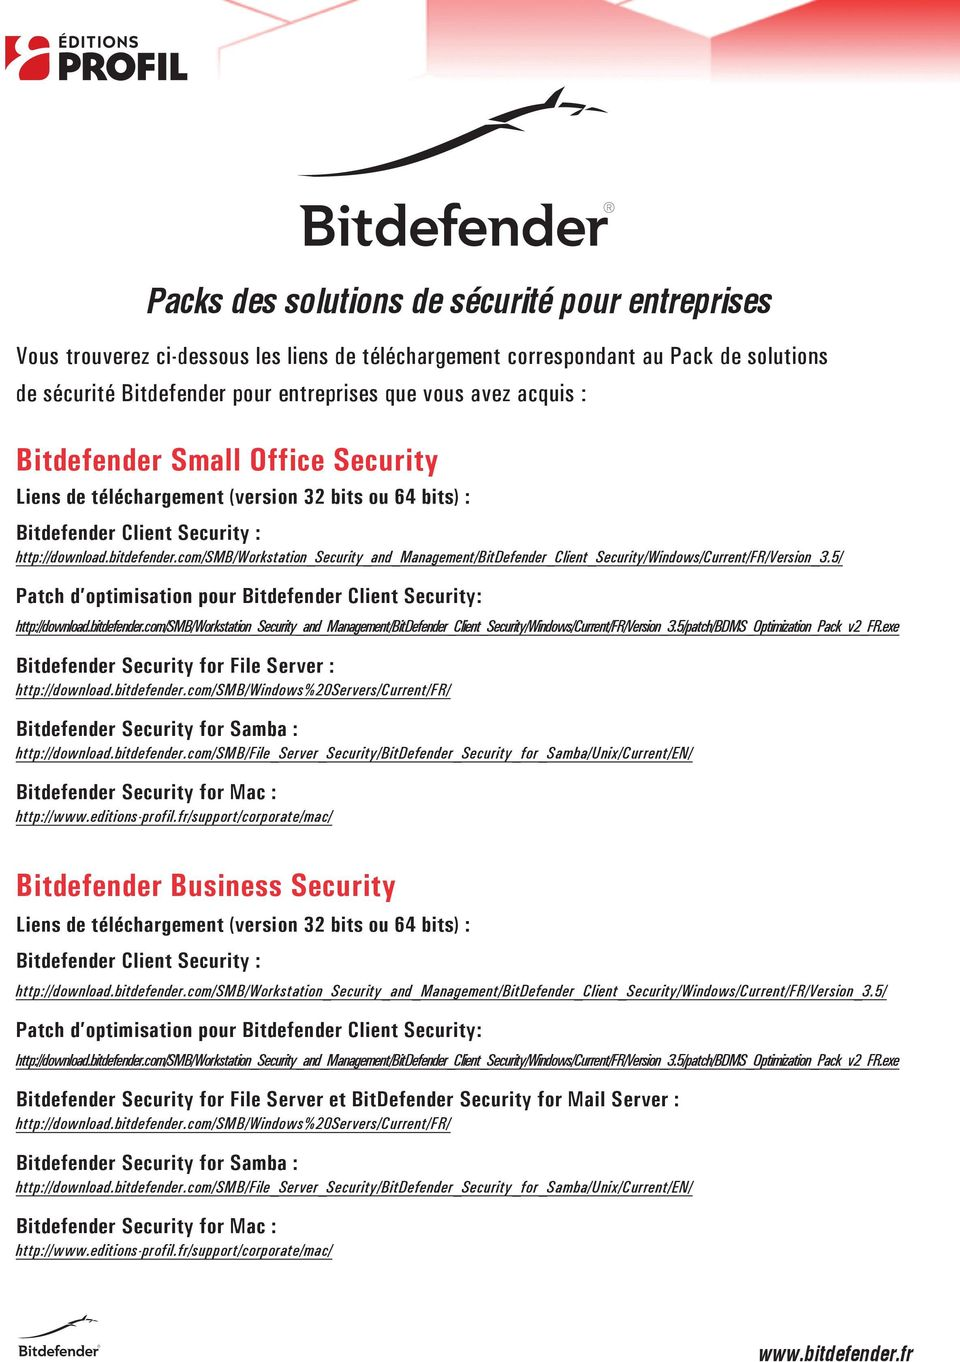 com/smb/file_server_security/bitdefender_security_for_samba/unix/current/en/ Bitdefender Security for Mac : Bitdefender Business Security Bitdefender Client Security : Bitdefender Security for